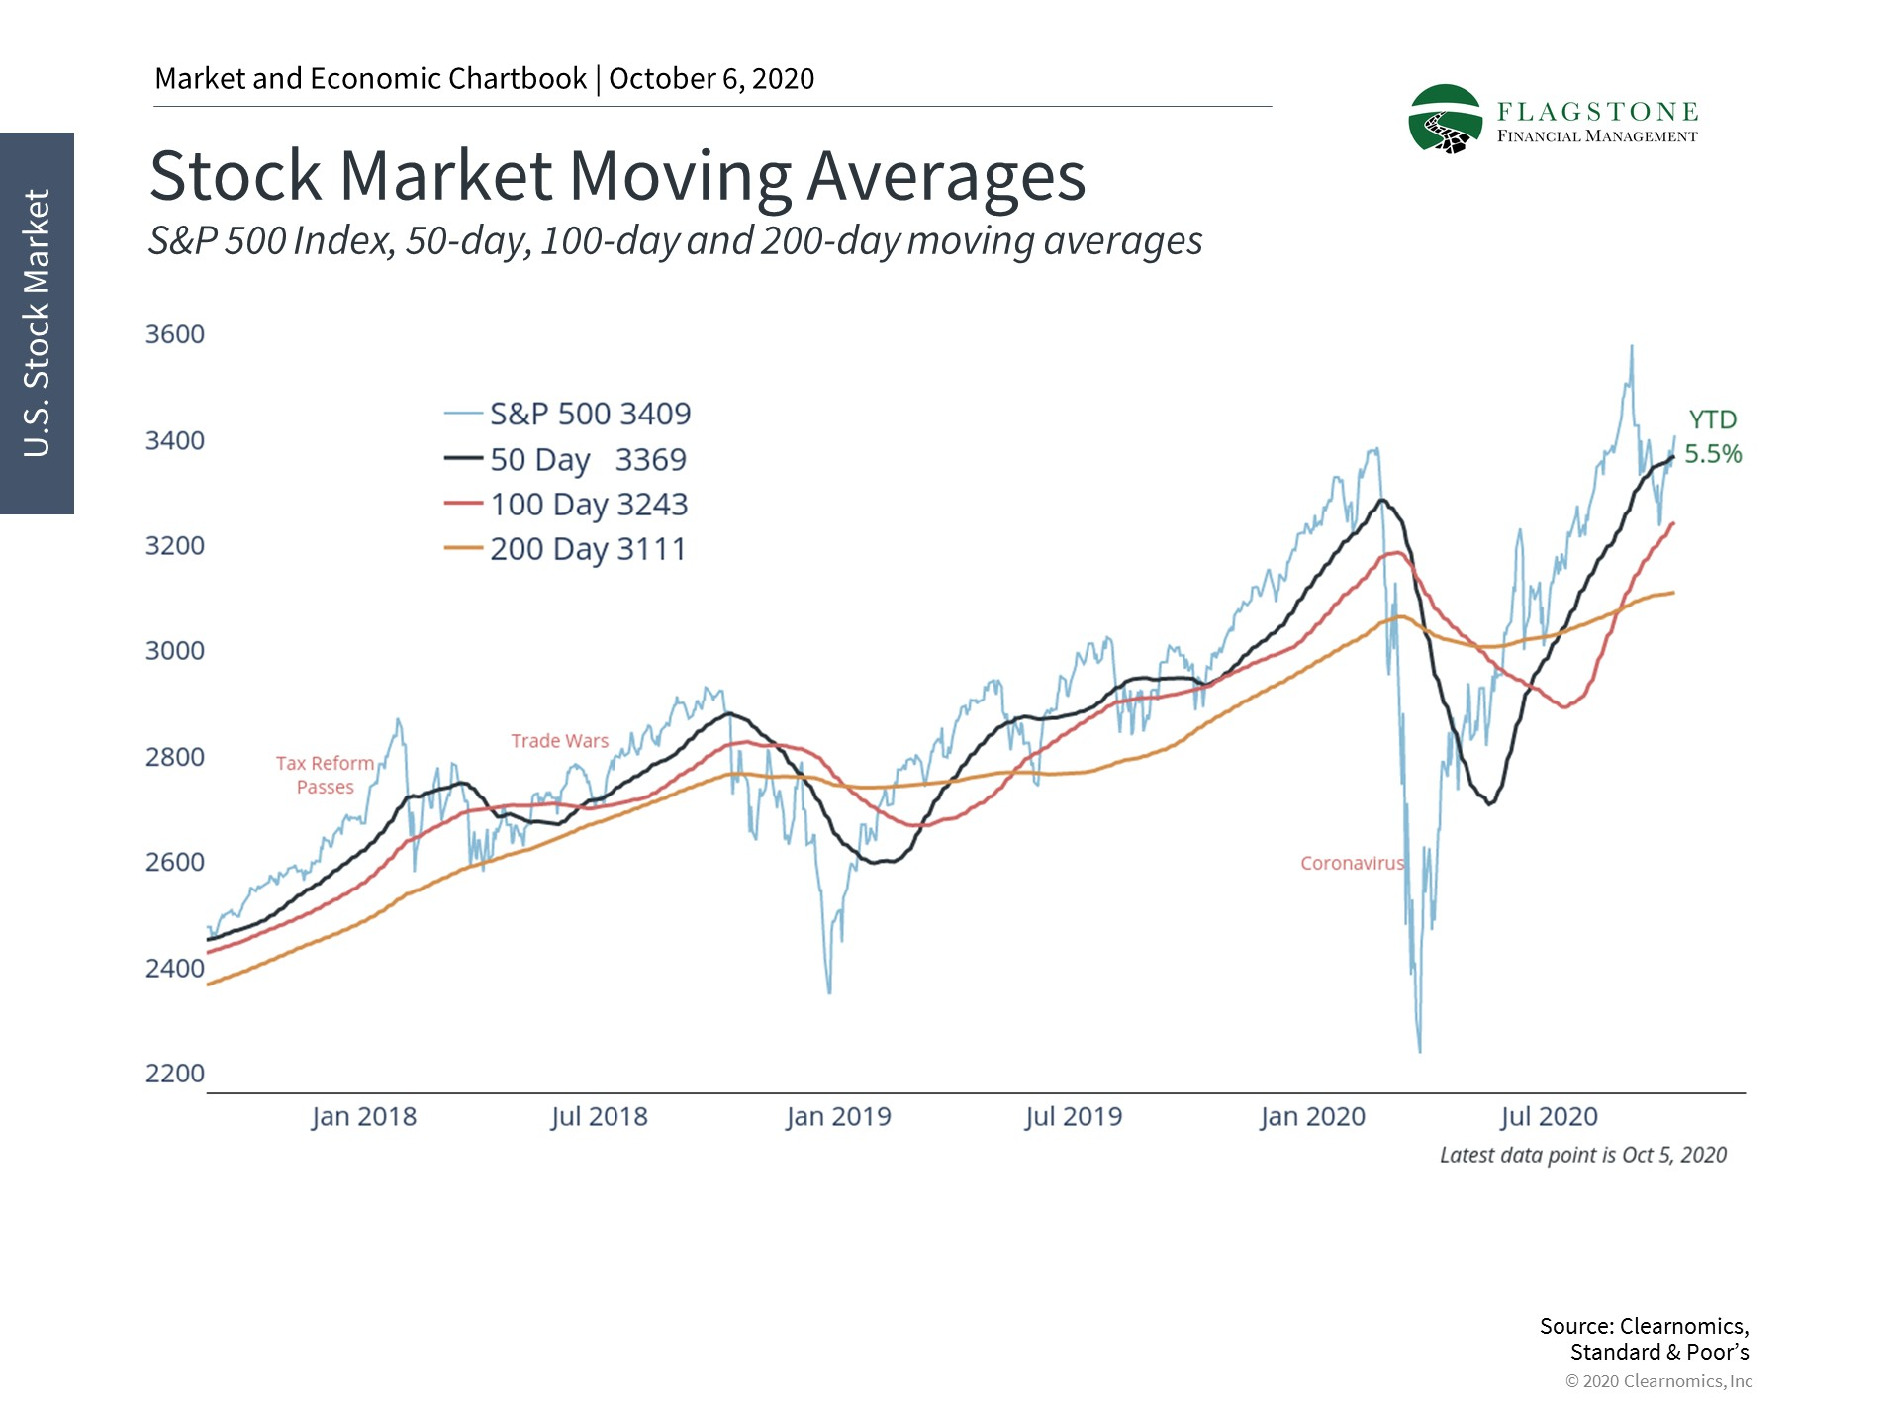 Chart showing historical stock market moving averages